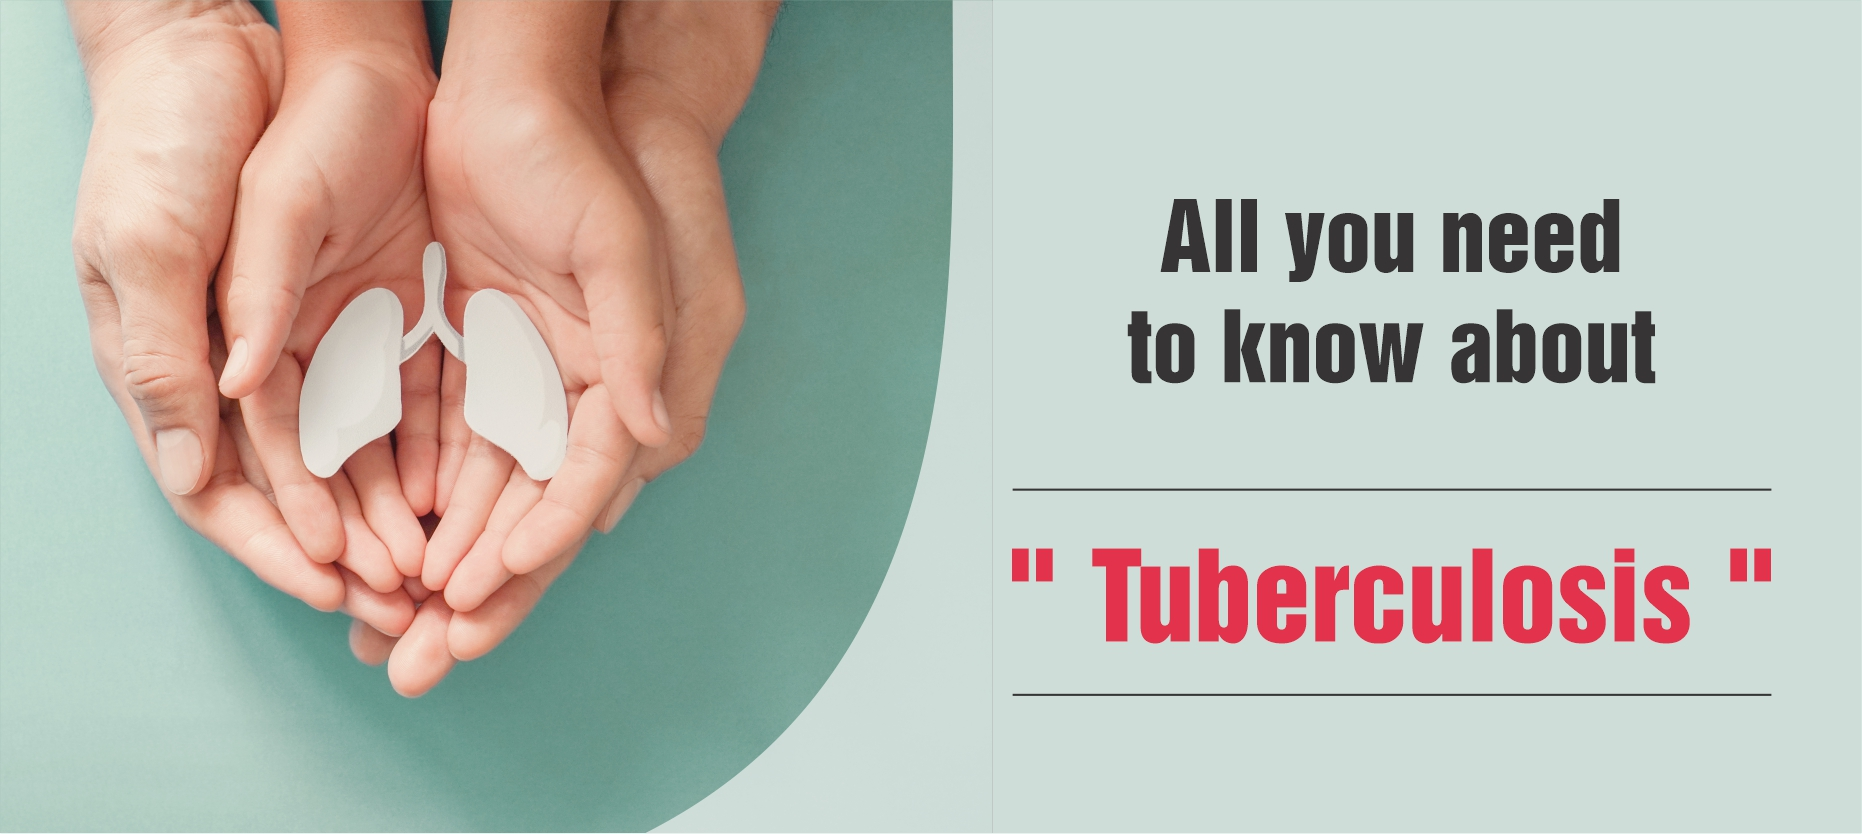 Tuberculosis: Causes, Signs, Stages, Diagnosis, Treatment & Prevention